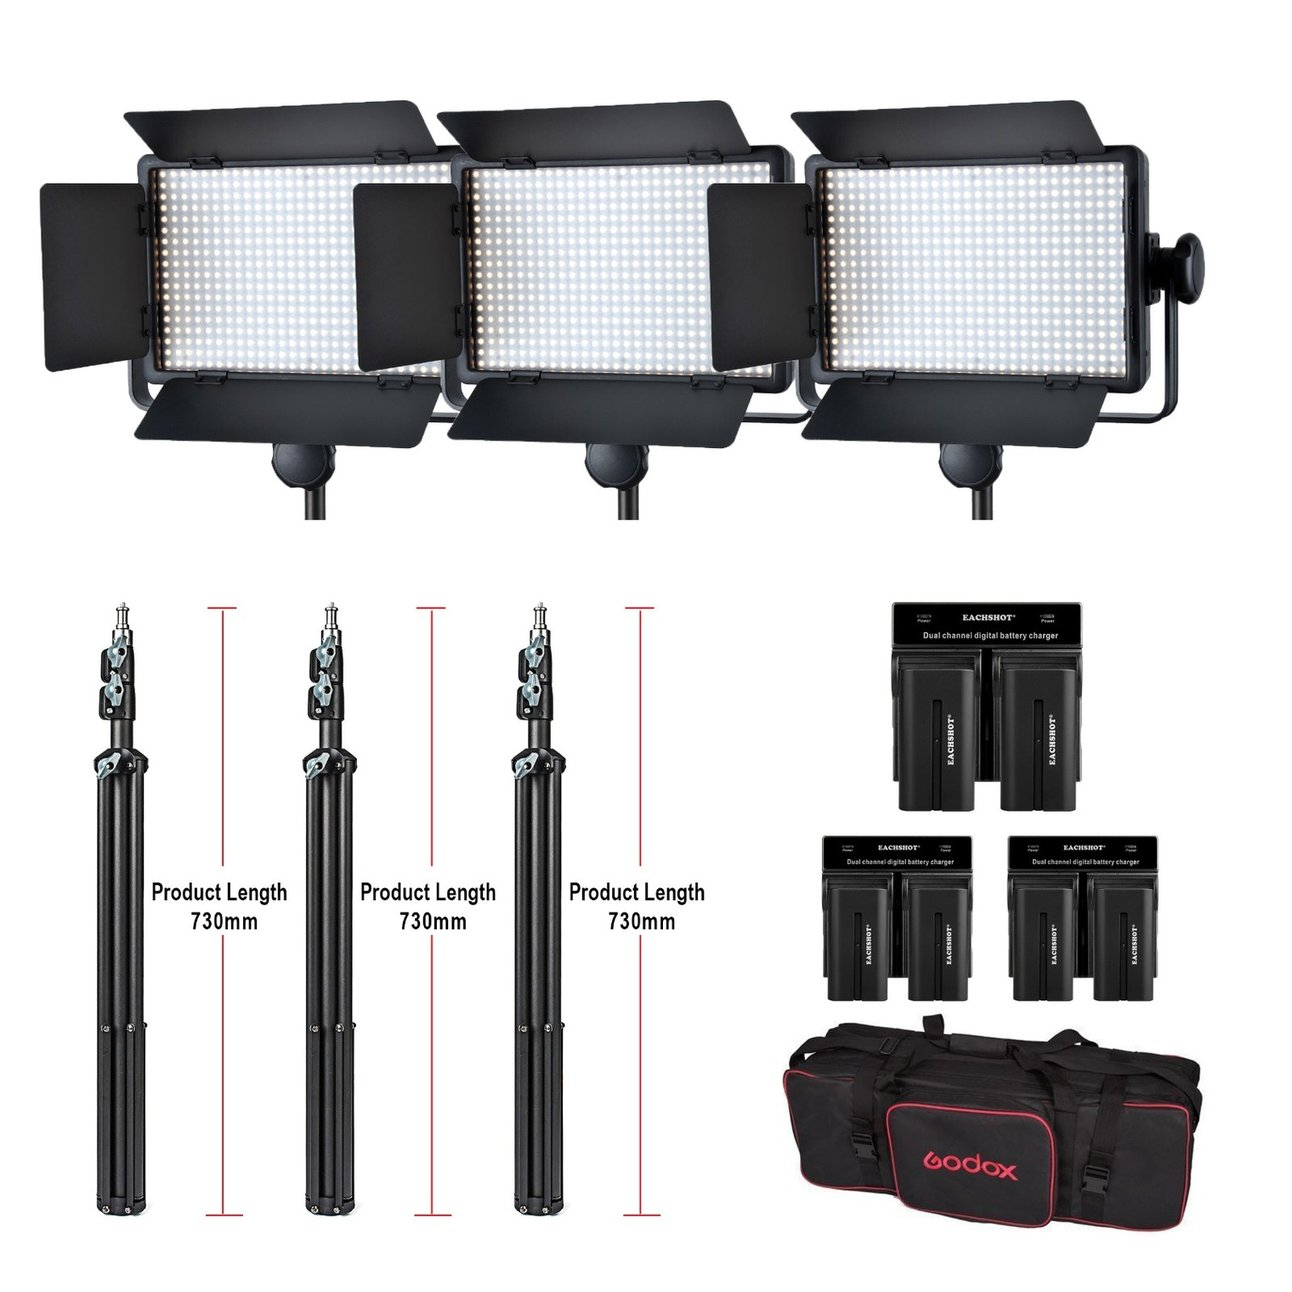 Godox Professional LED Video Light LED500C Changeable Version 3300K-5600K + battery+Dual Charger +2M light stand godox professional led video light led500w white version 5600k new arrival free shipping